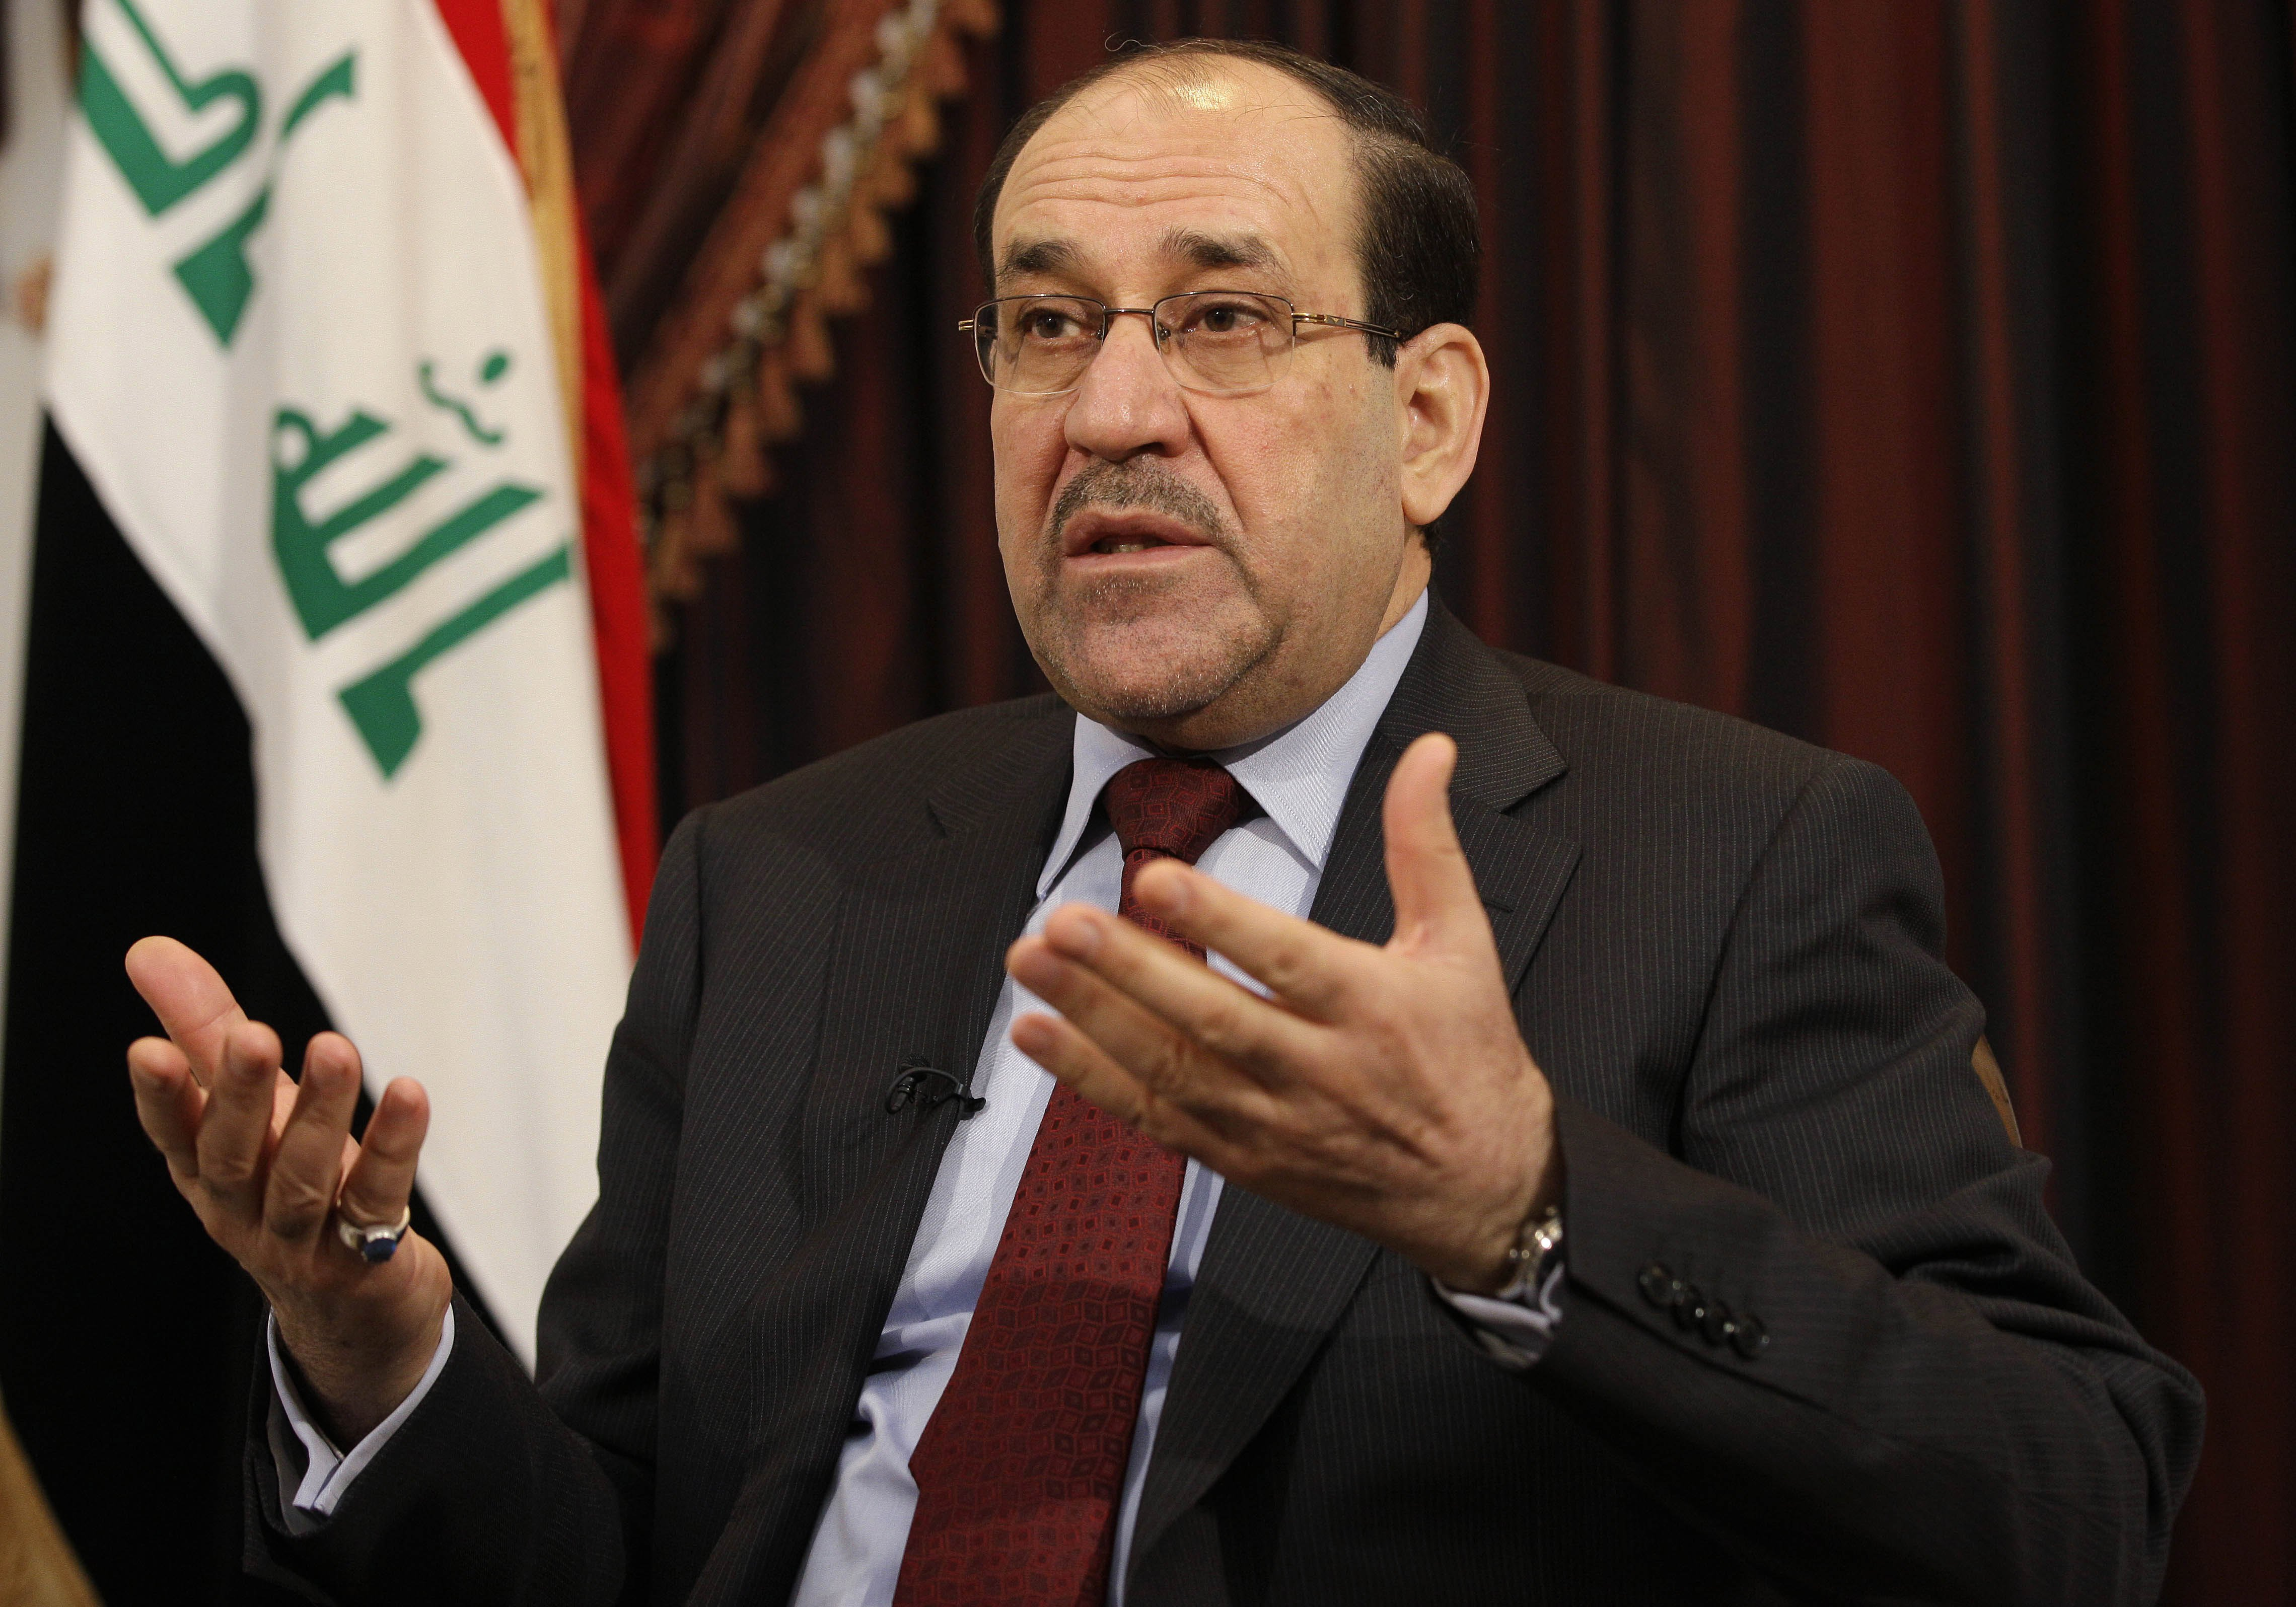 Iraq's Prime Minister Nouri al-Maliki speaks during an interview with the Associated Press in Baghdad on Dec. 3, 2011